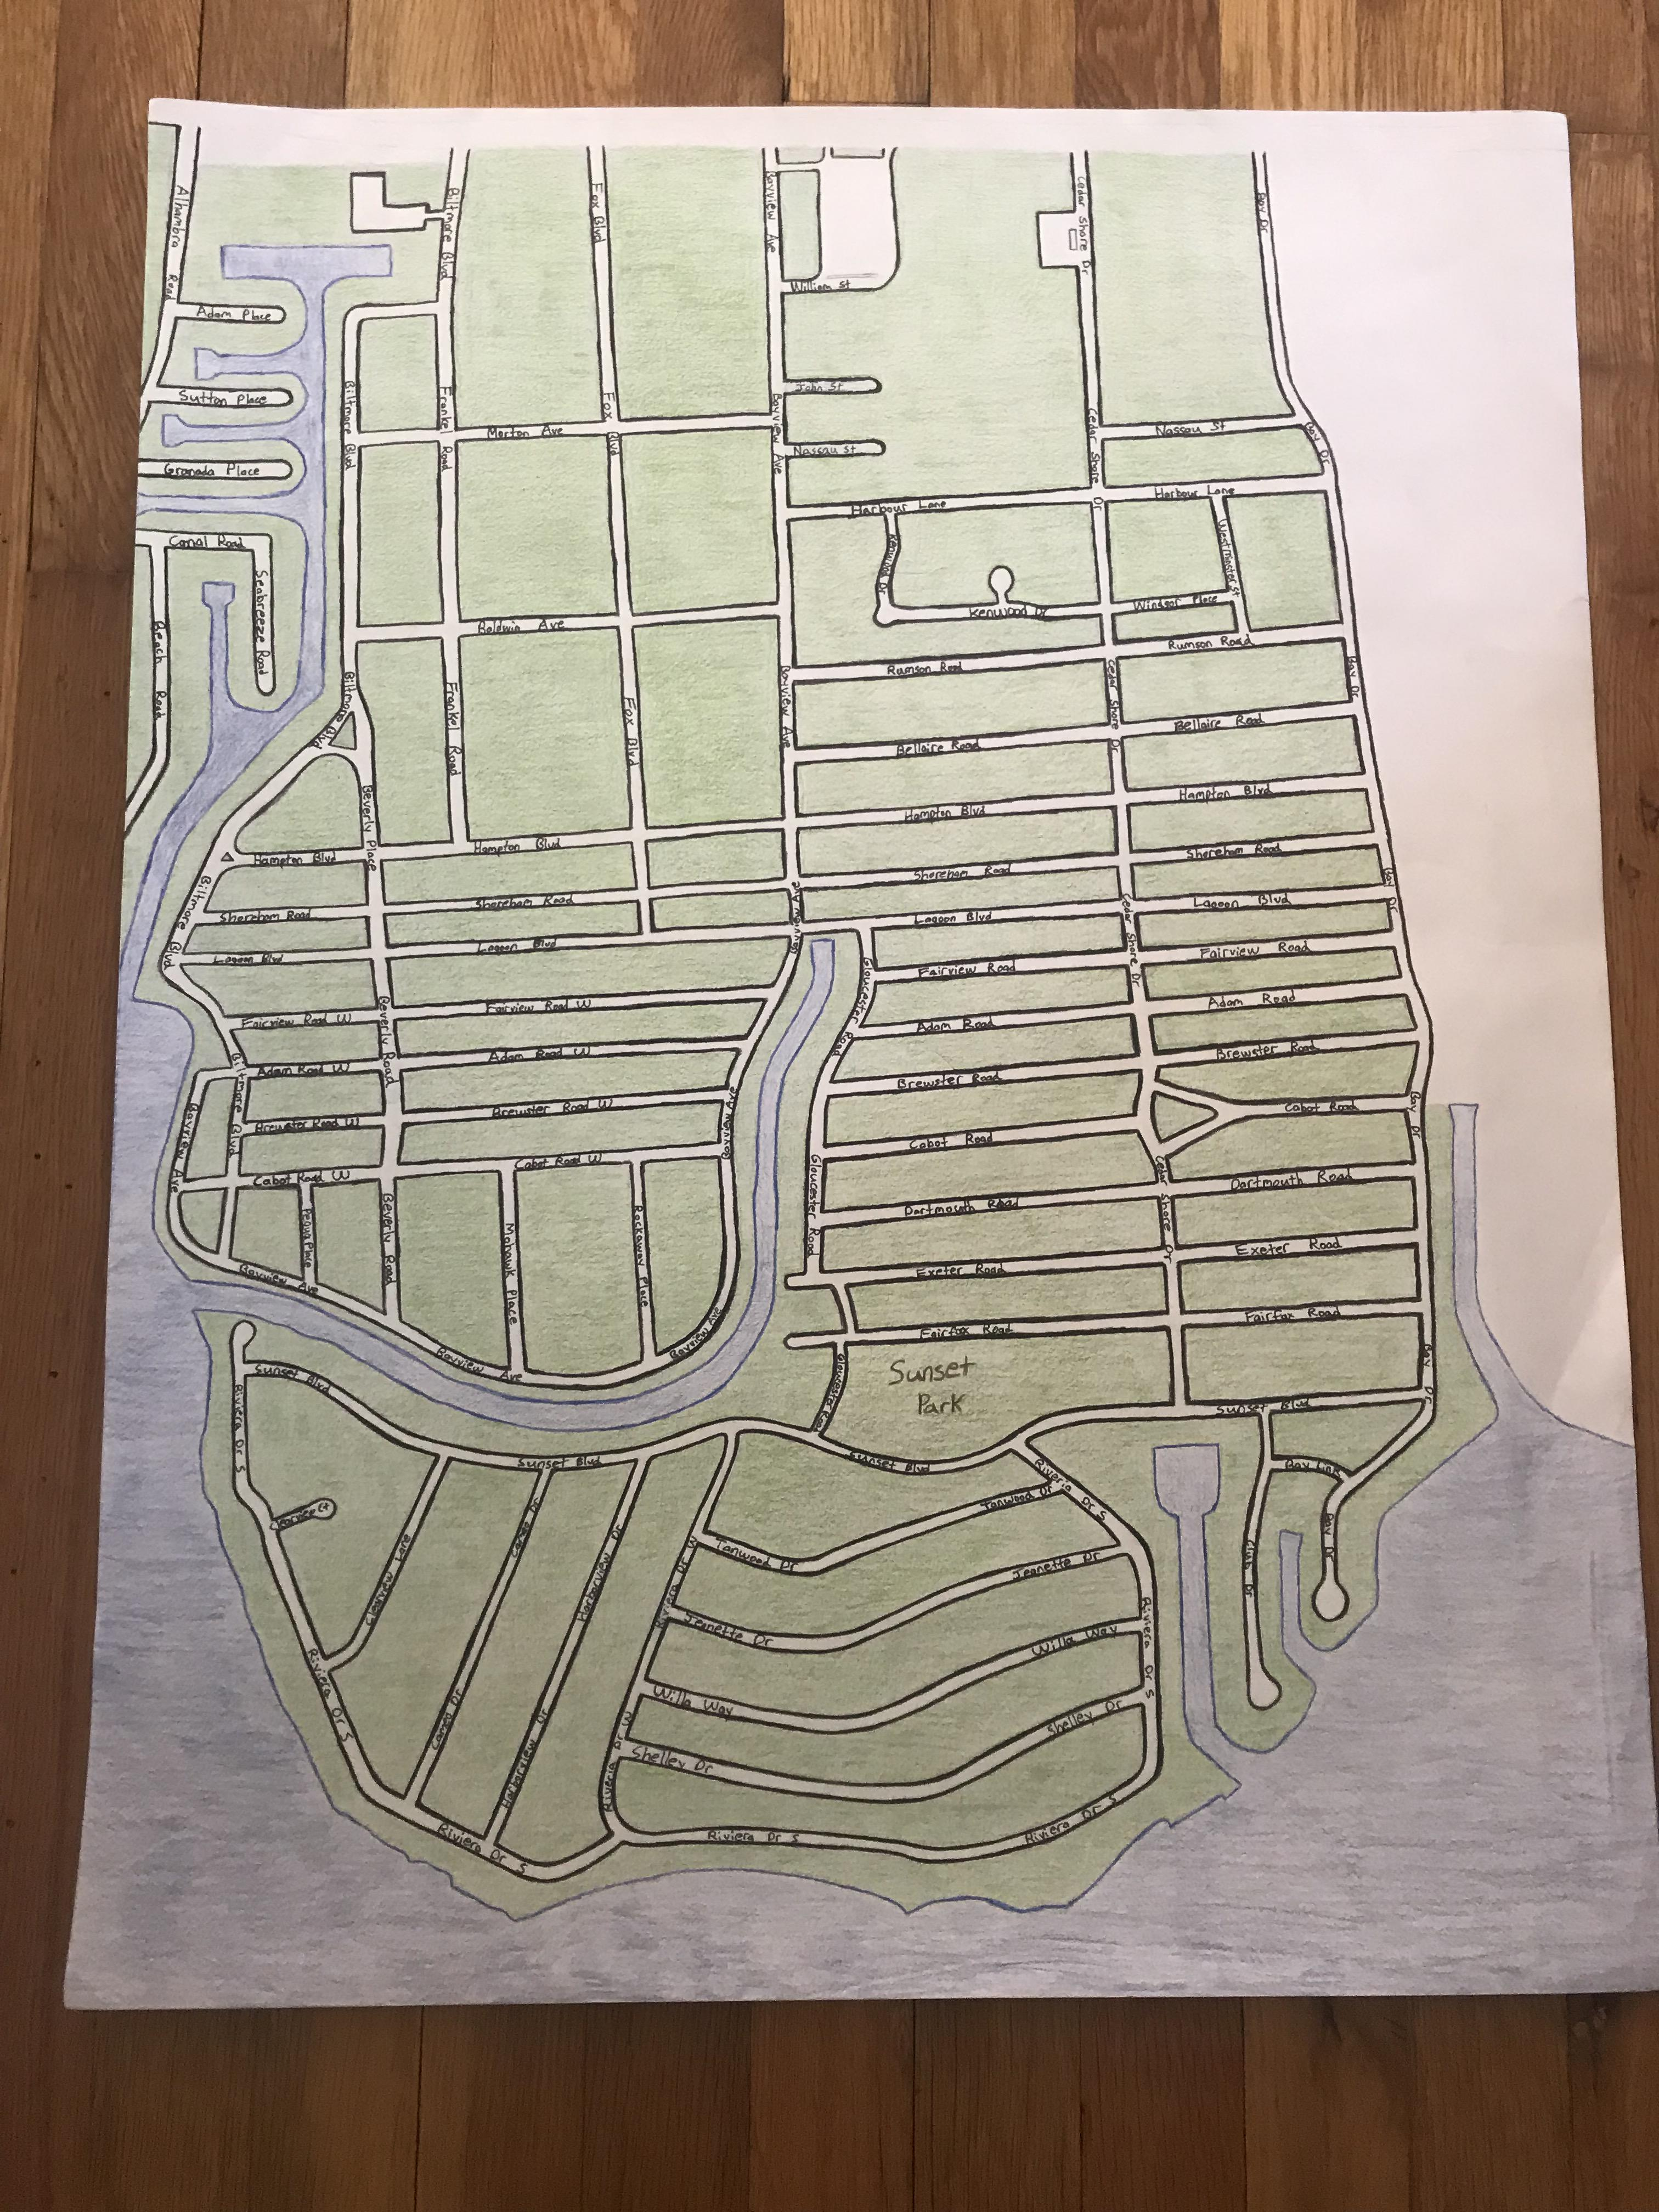 Close To Finishing My First Map Of My Neighborhood